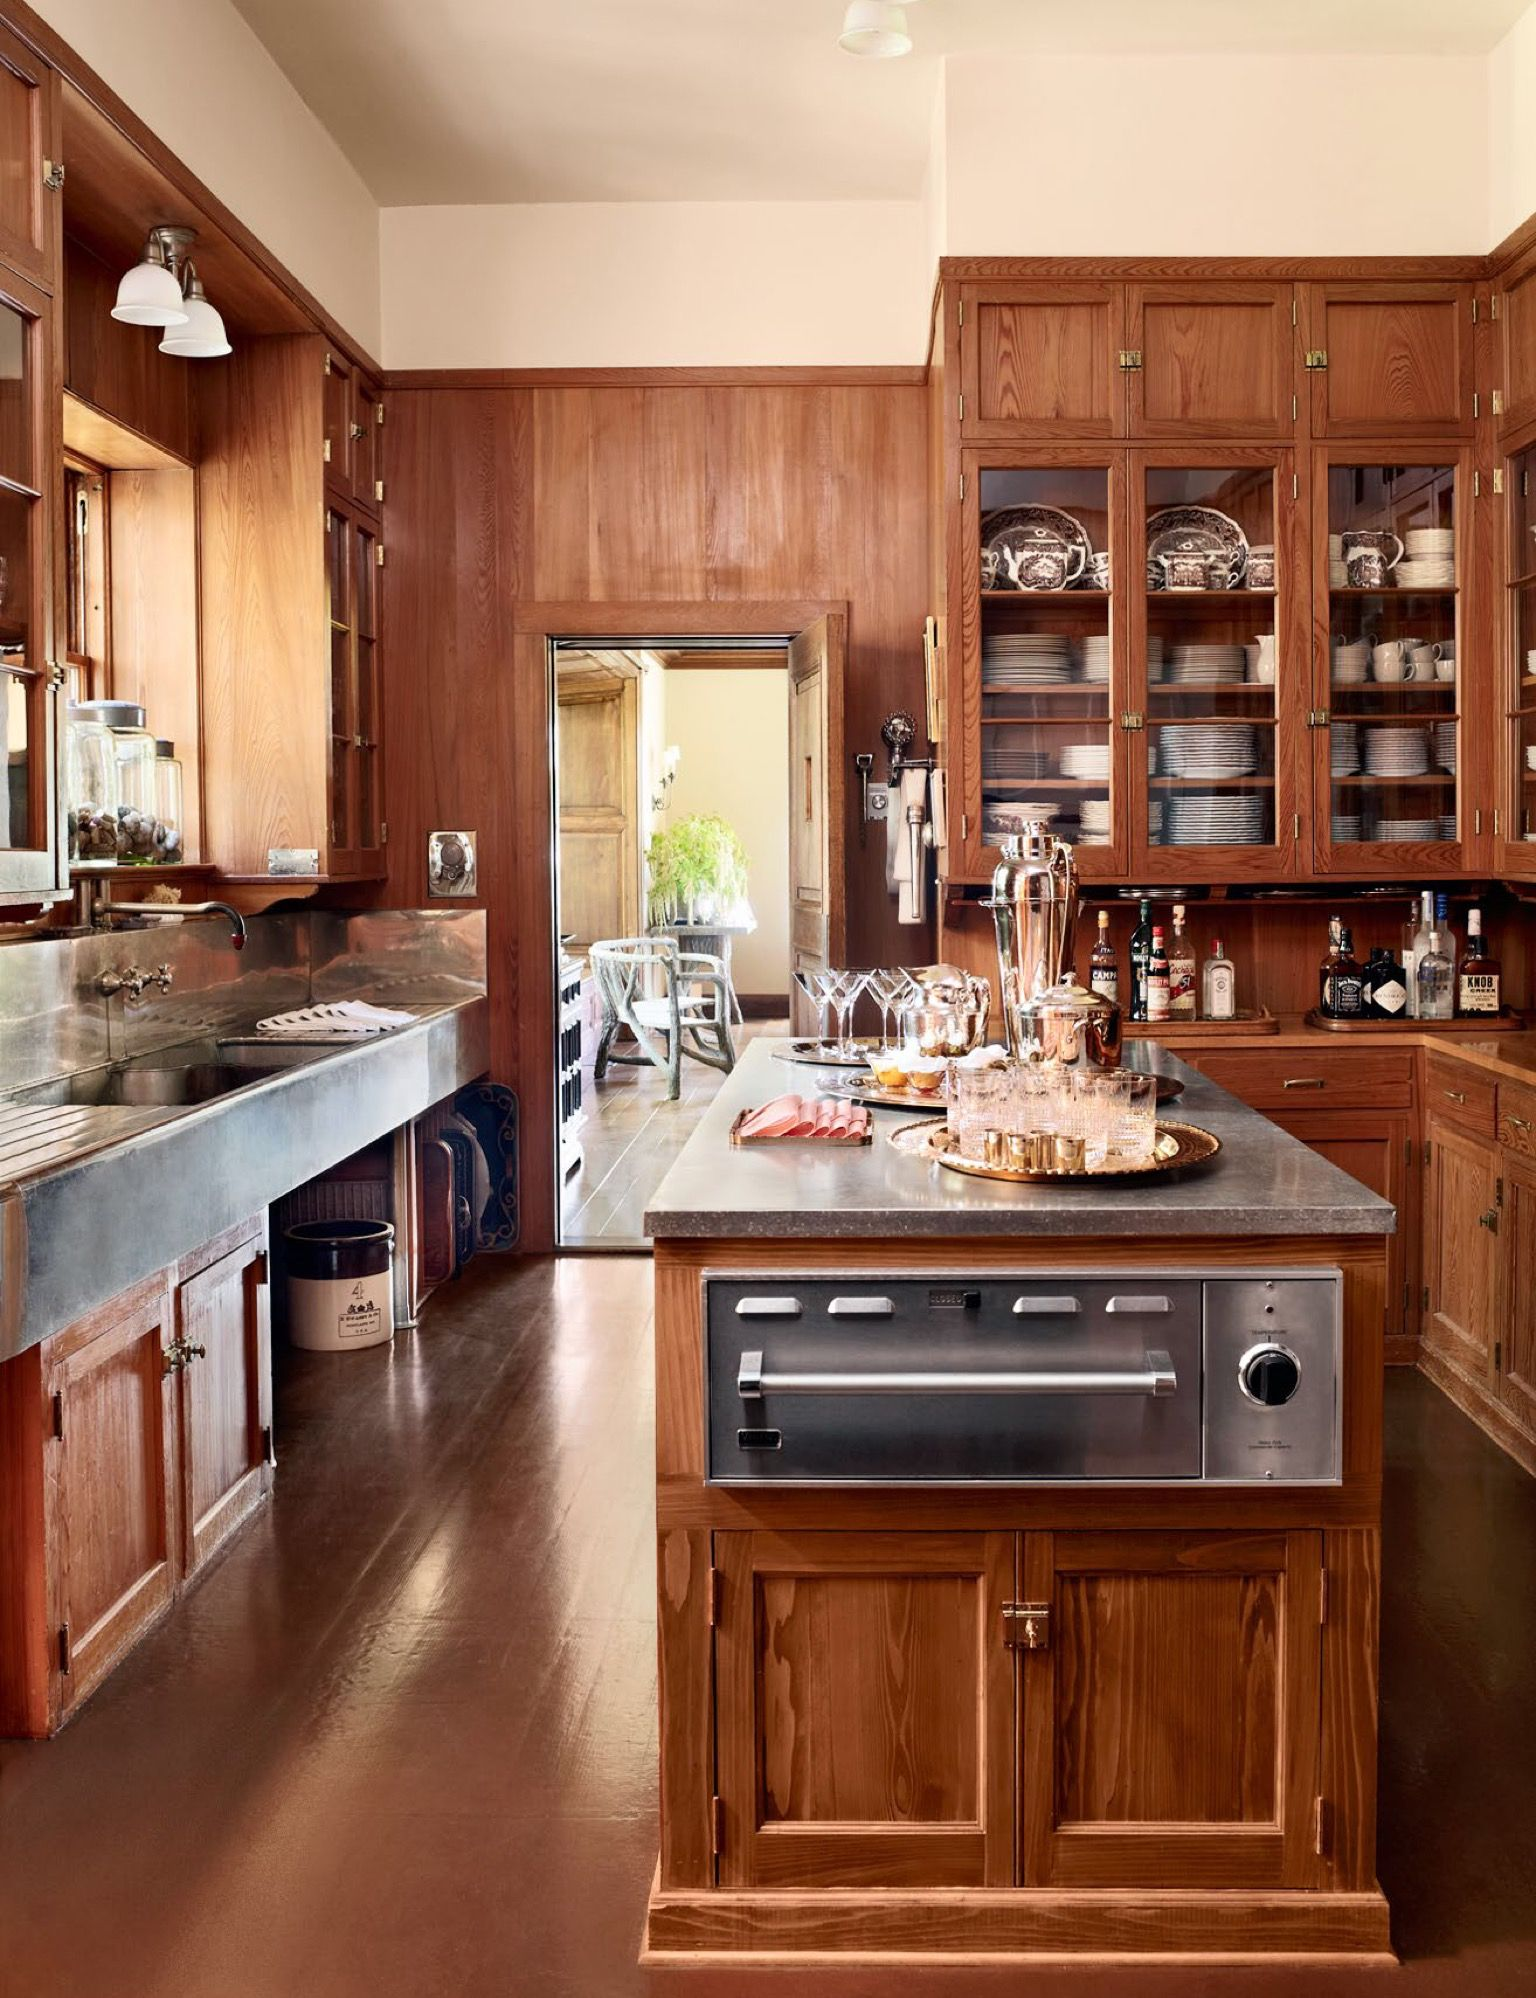 The Original Ford #kitchen Has A Few Upgrades But Kept Its Original  #cabinetry